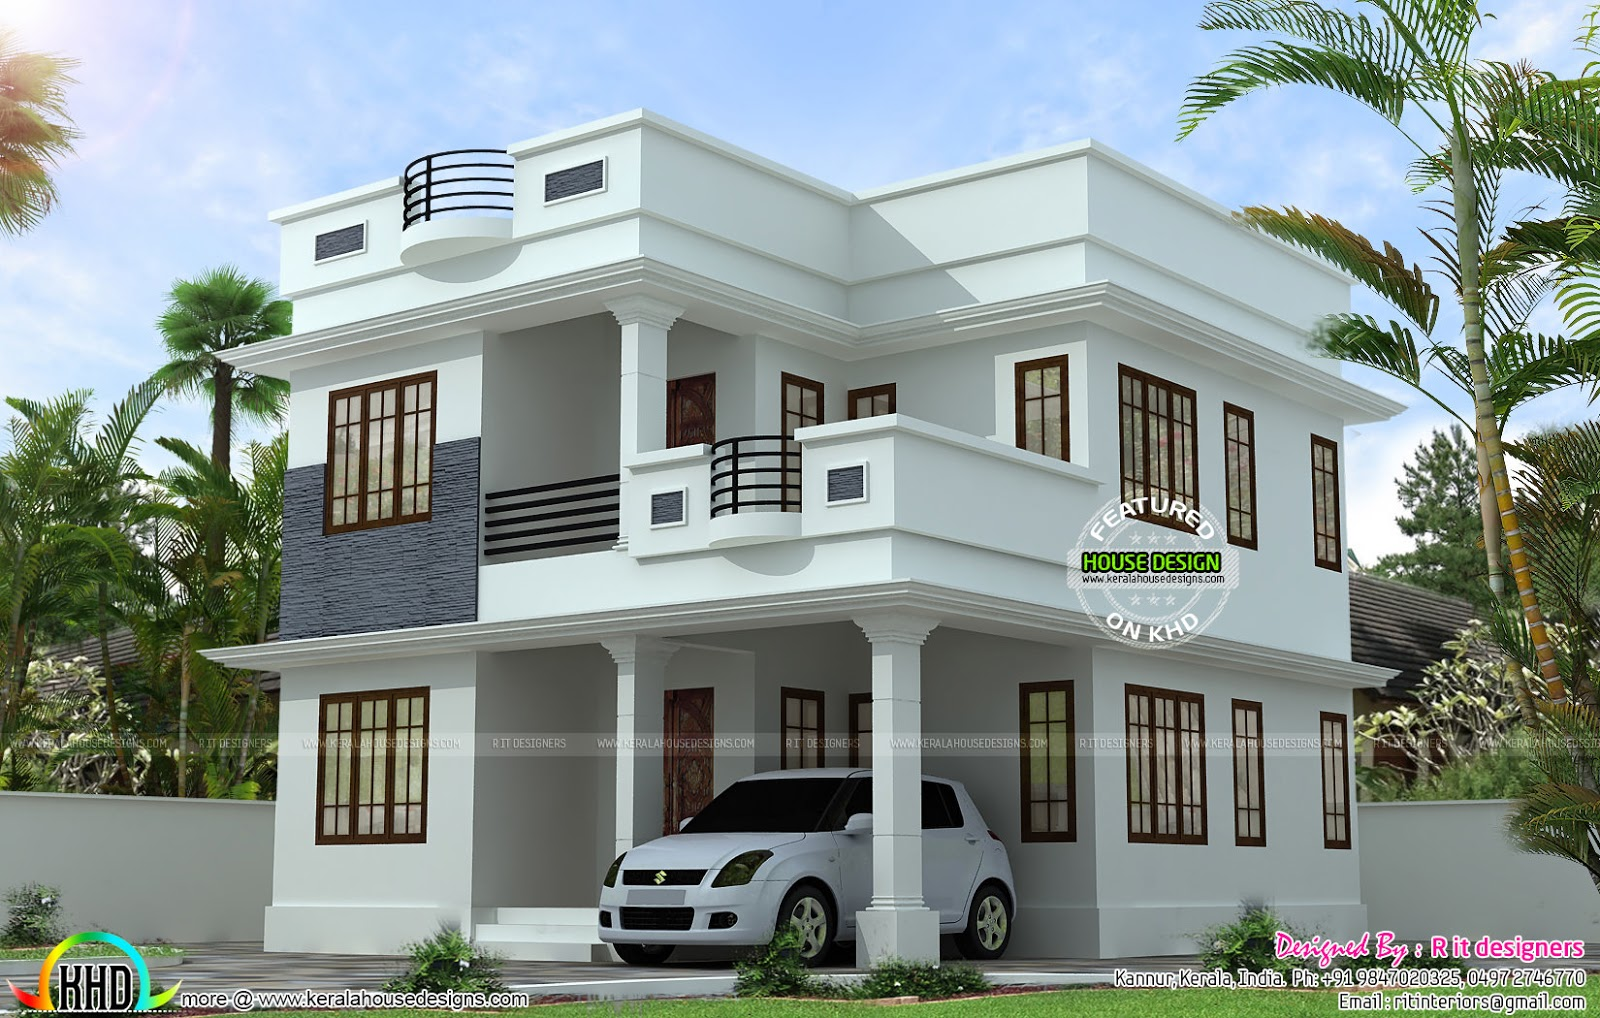 Neat and simple small house plan kerala home design and - Small house simple design ...